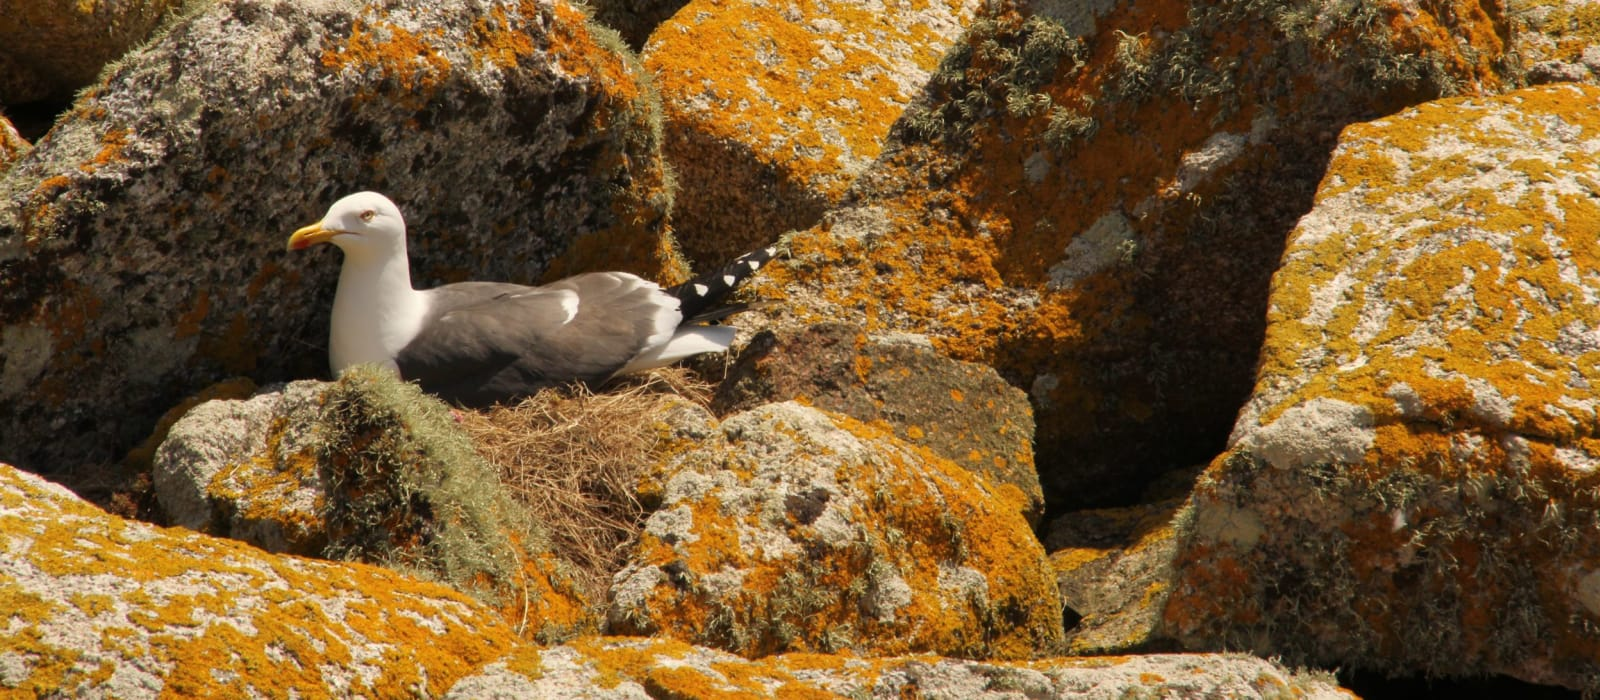 Isles of Scilly Seabird Conservation Strategy (2018-2023)